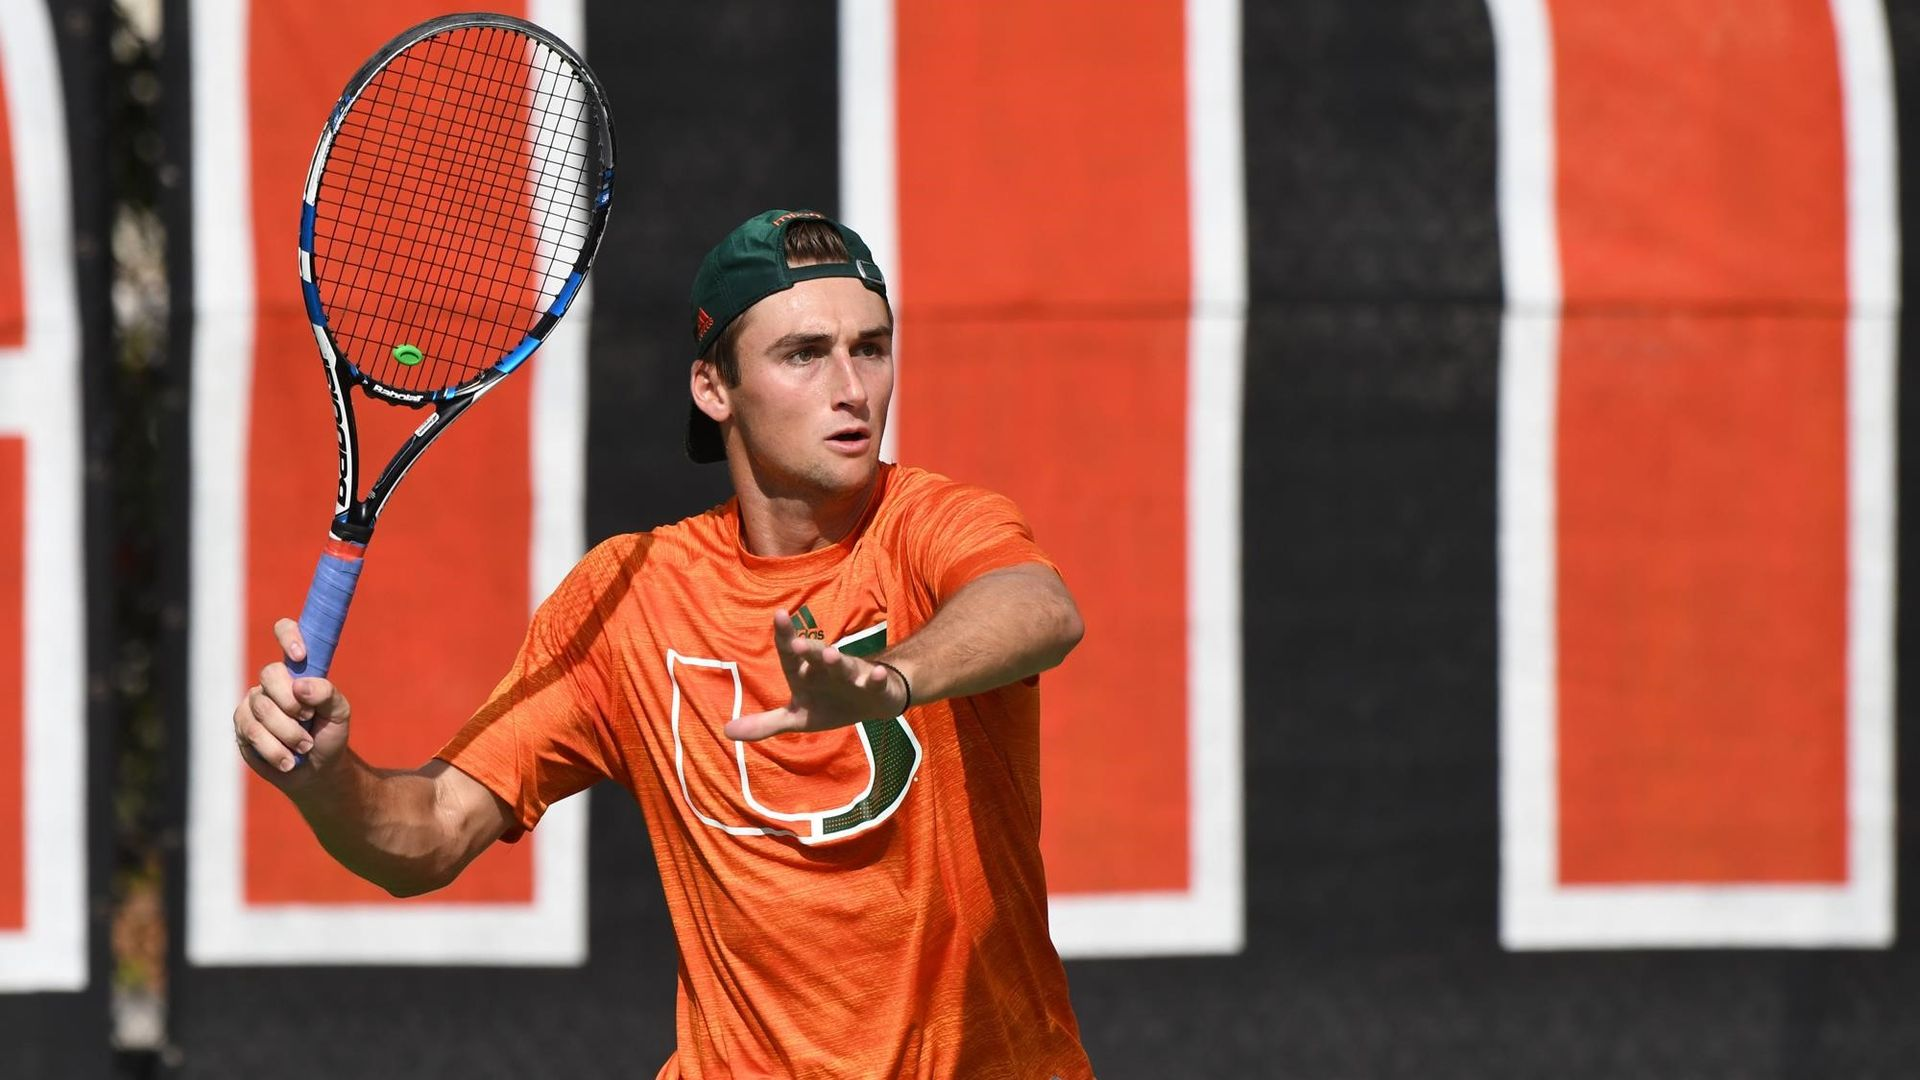 Canes Shine During Day Three of ITA All-American Championships